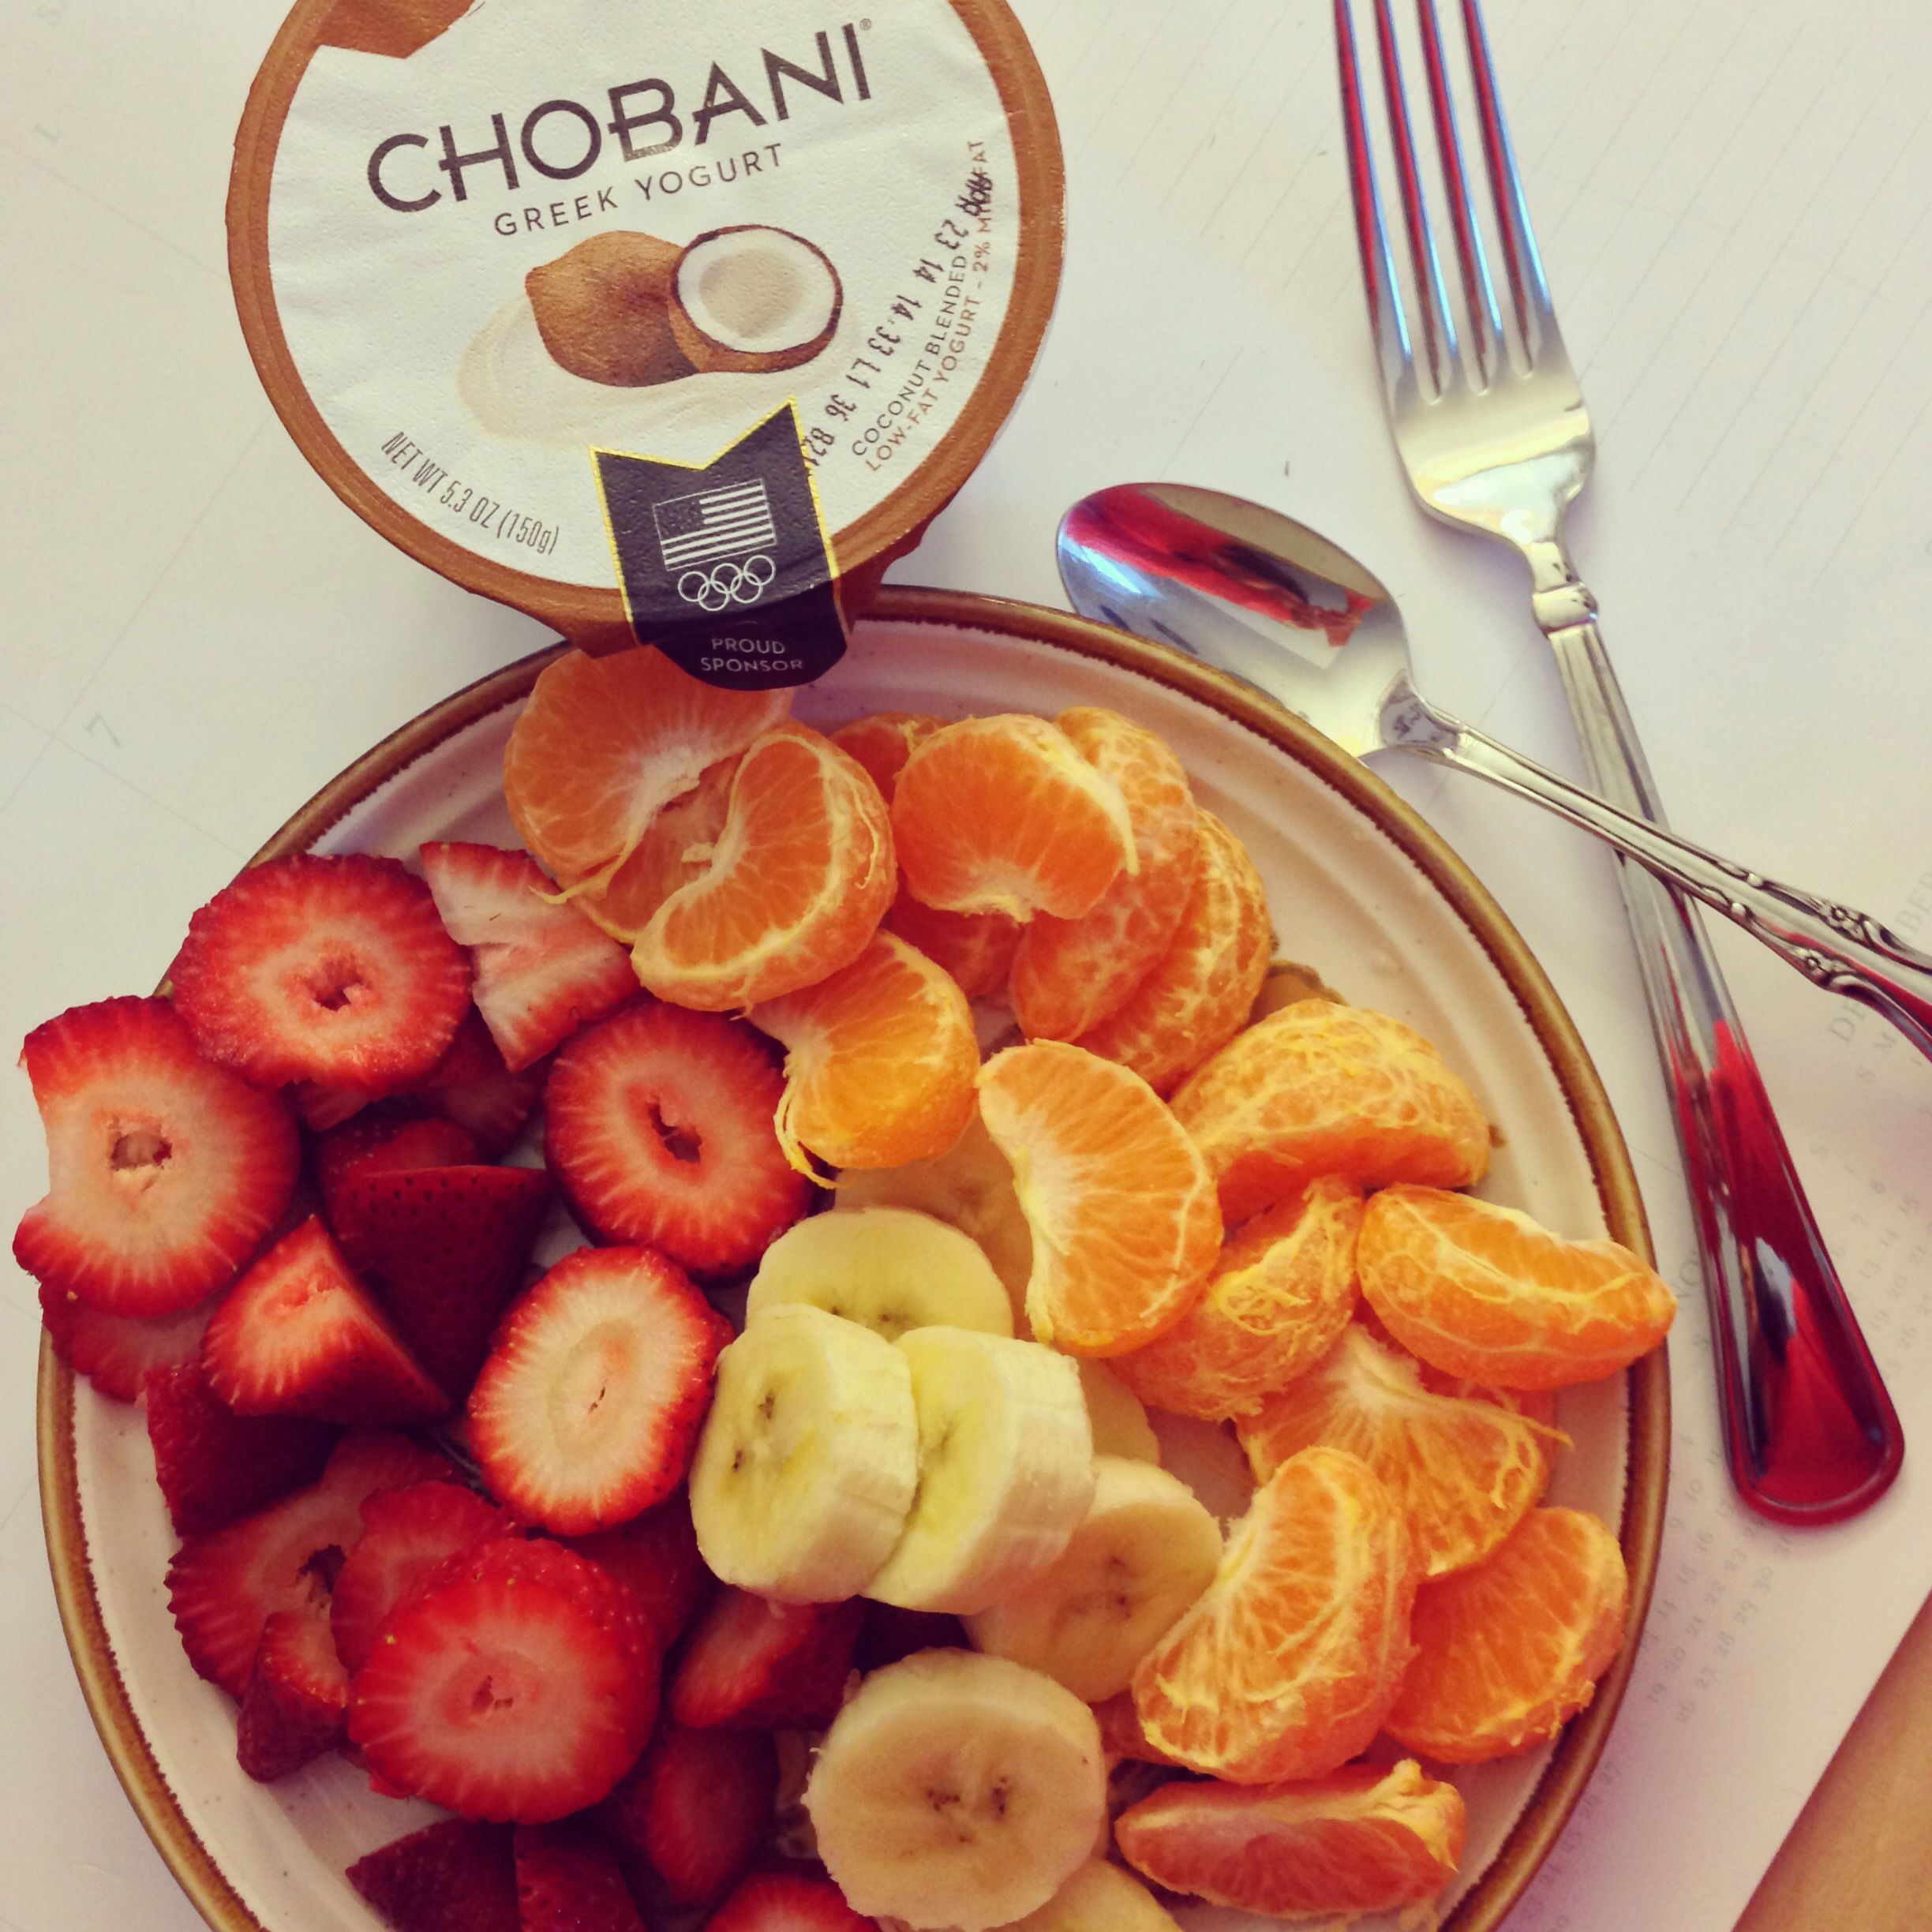 Try this combo of fruits and Greek yogurt for a delicious breakfast!